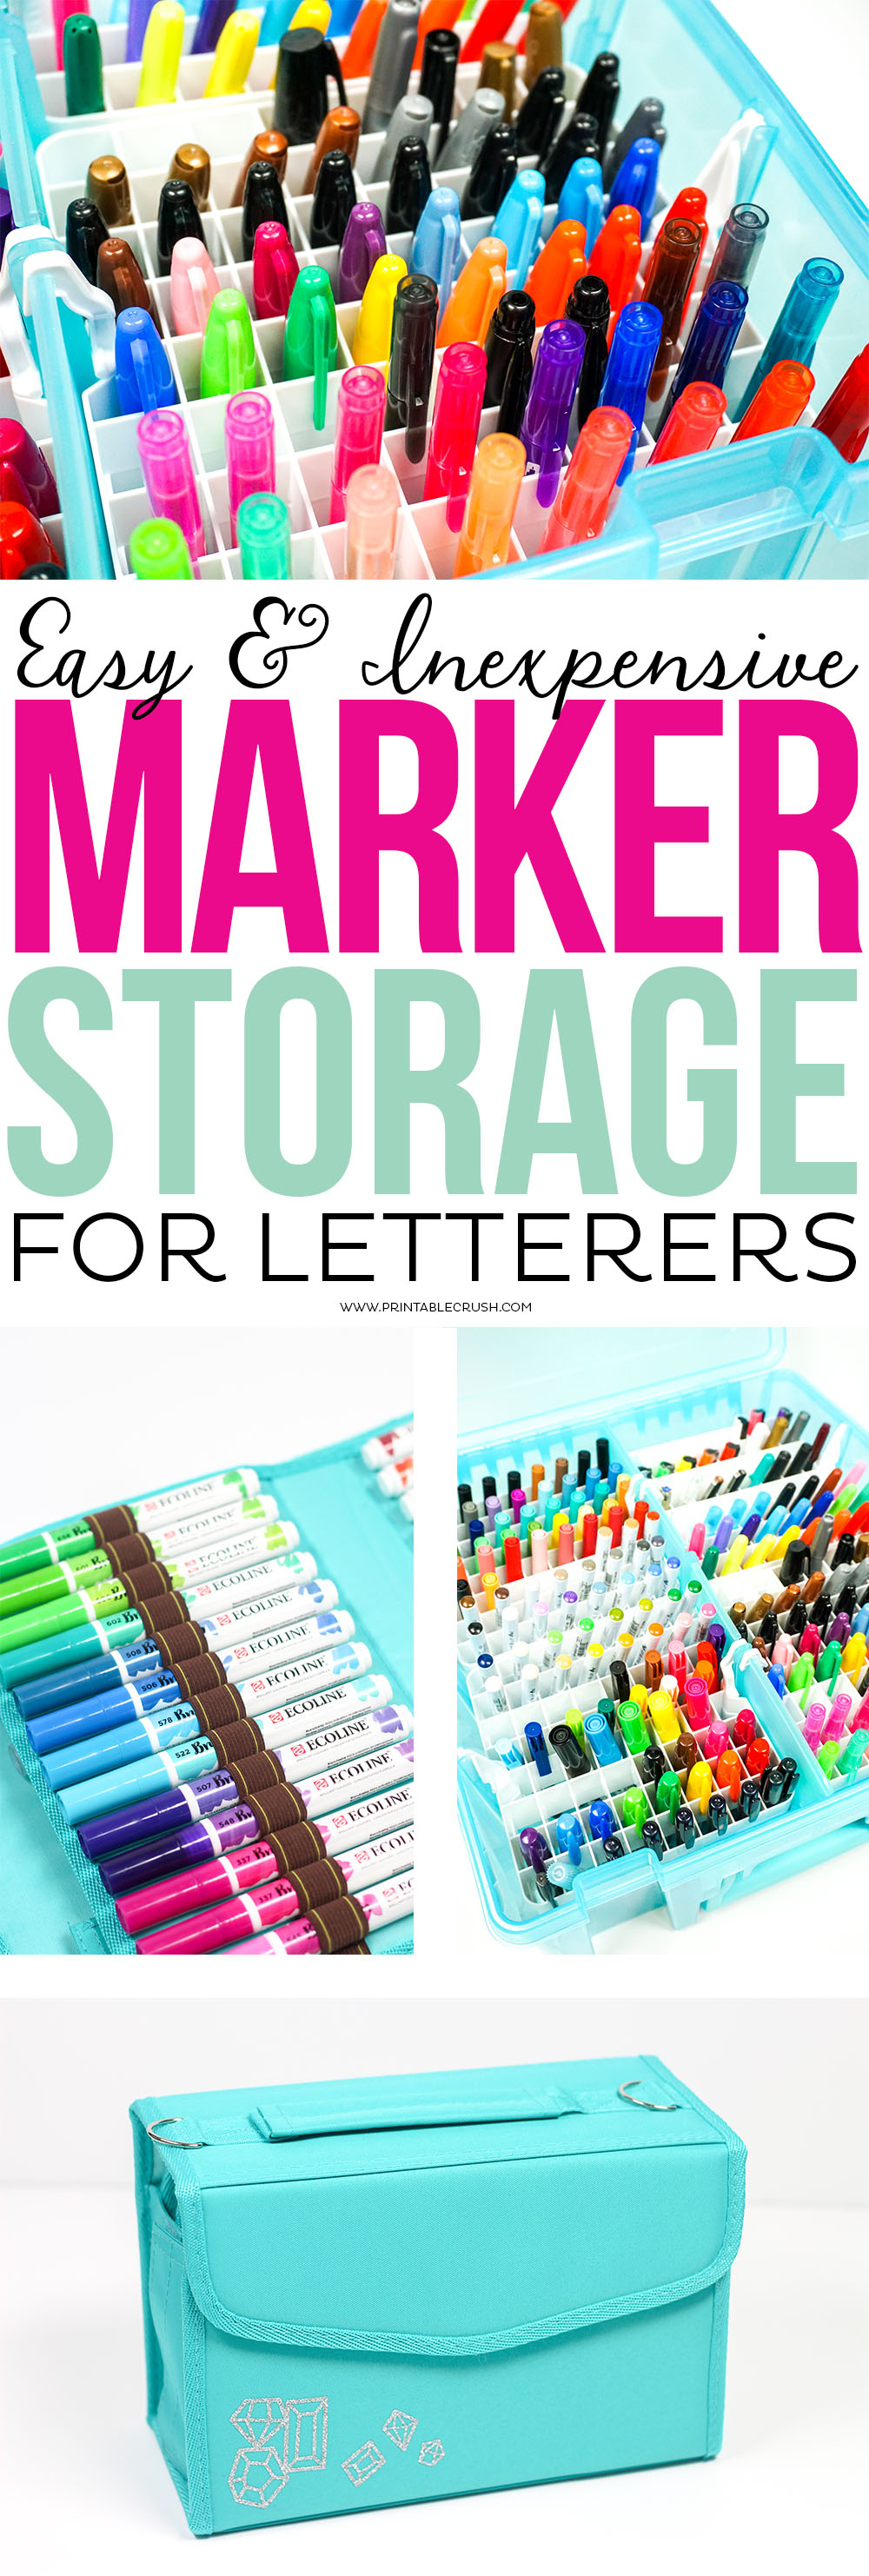 If you feel like you could be on an episode of Hoarders because of all your lettering pens, you'll love these ideas for Easy and Inexpensive Marker Storage forLetterers! via @printablecrush